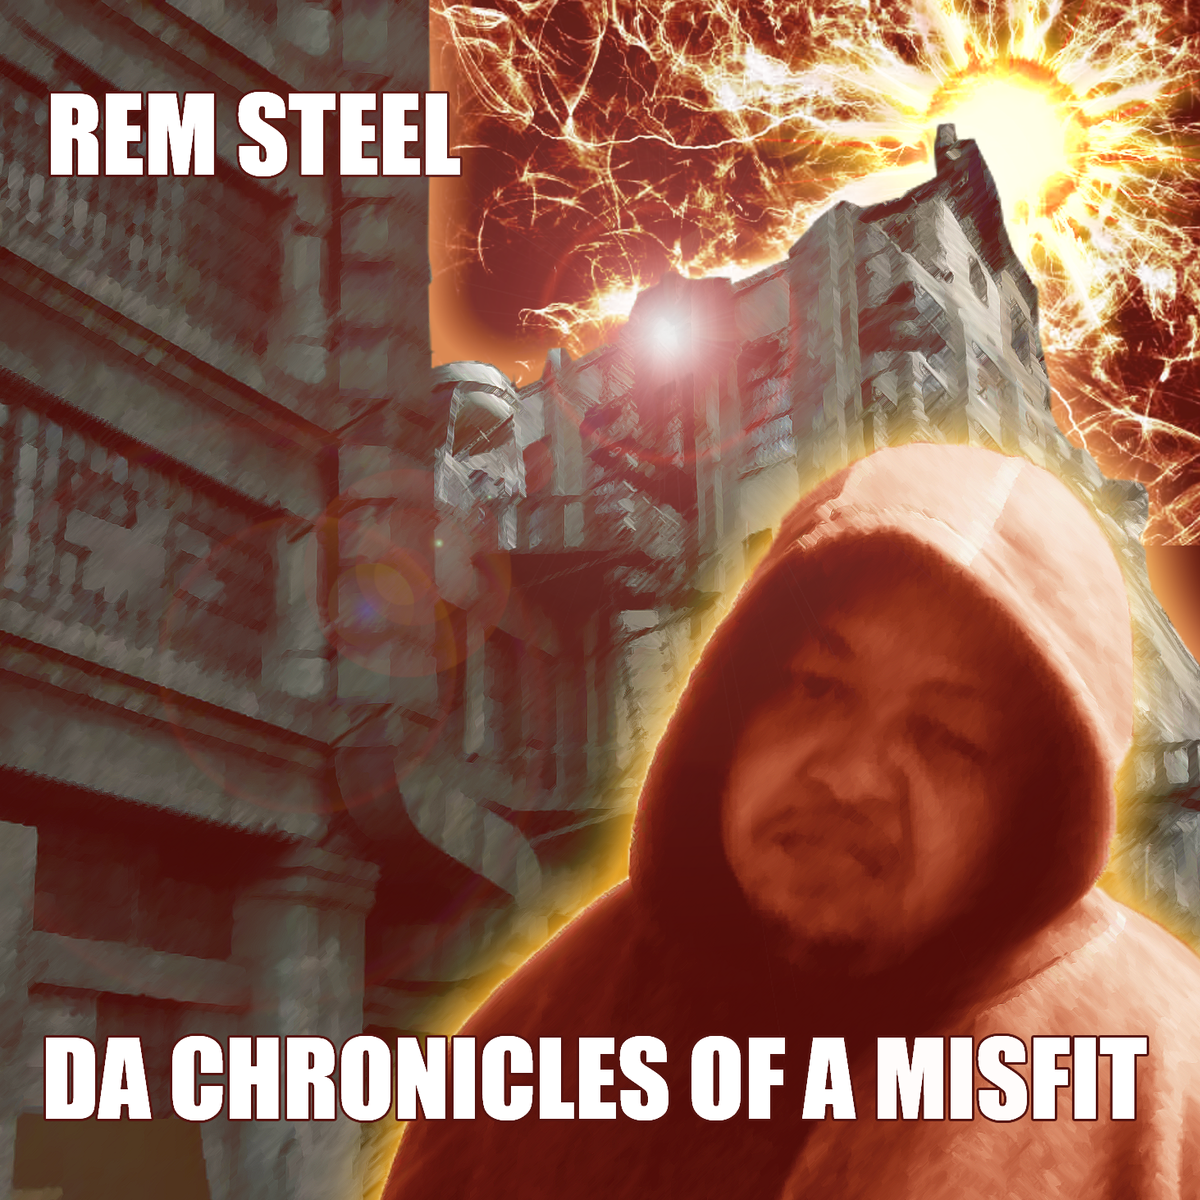 rem steel da chronicles cd cover hbgm 1463